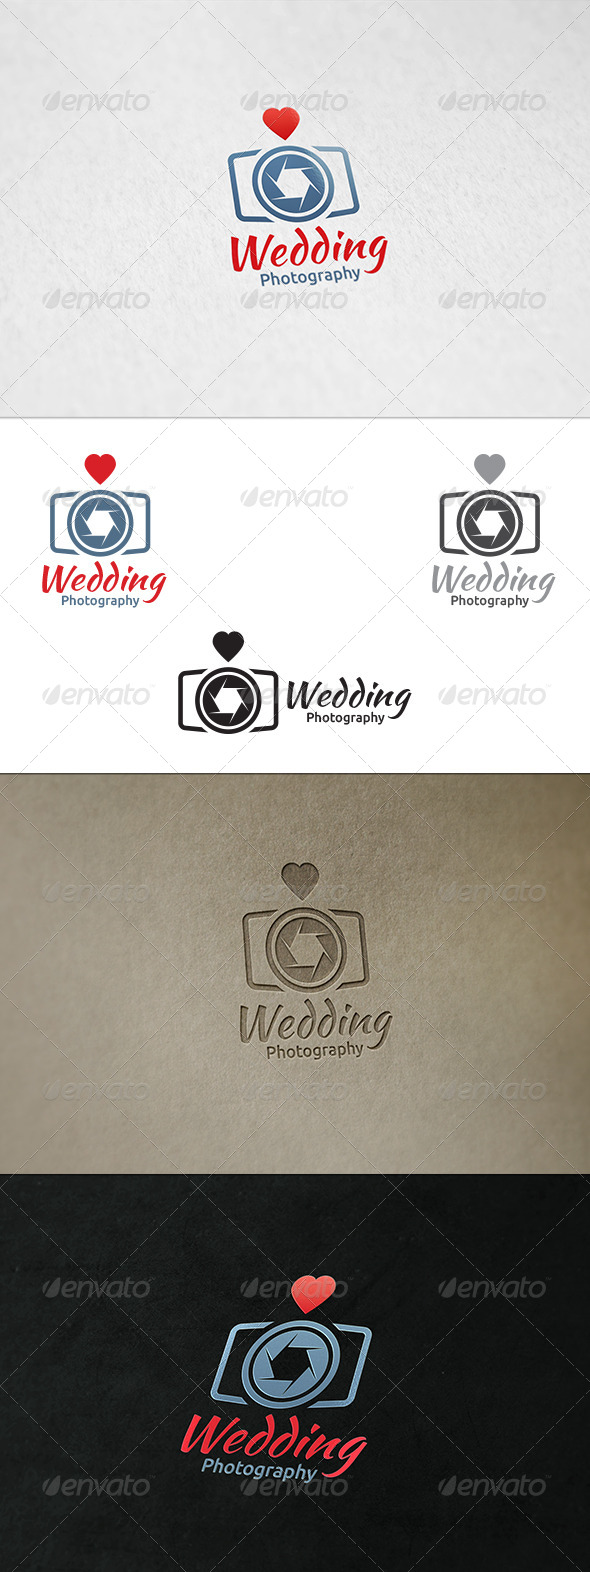 GraphicRiver Wedding Photography Logo Templates 8676549